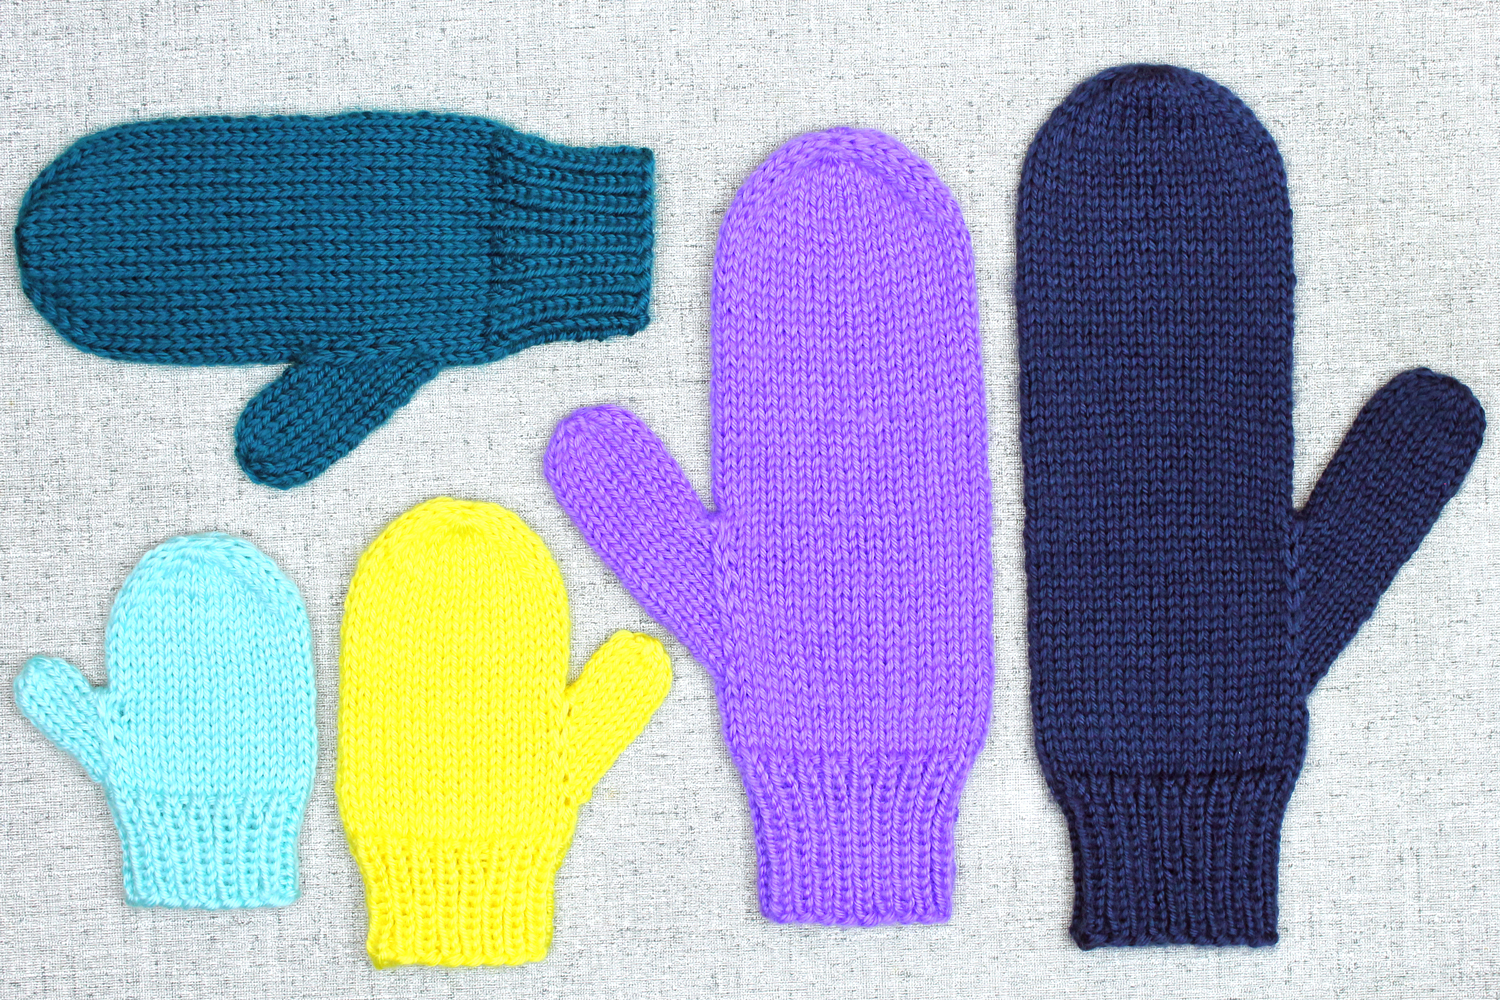 Knitting Pattern For Basic Mittens : Home - Handmade Accessories by PurlsAndPixels